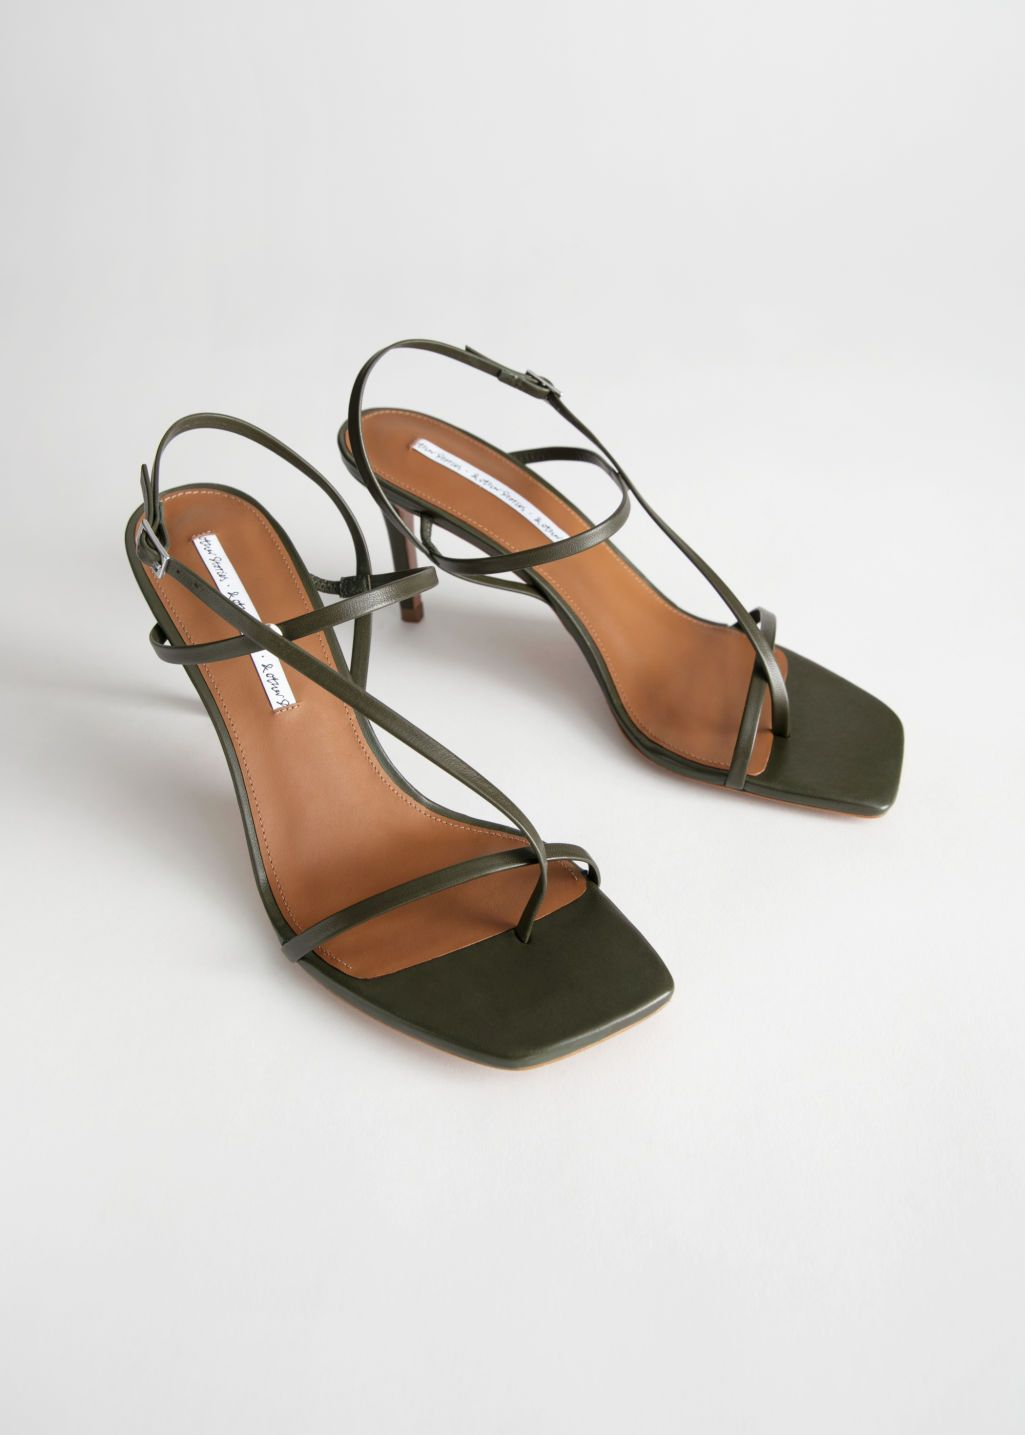 Cross Strap Stiletto Sandals is part of Stiletto sandals -  3